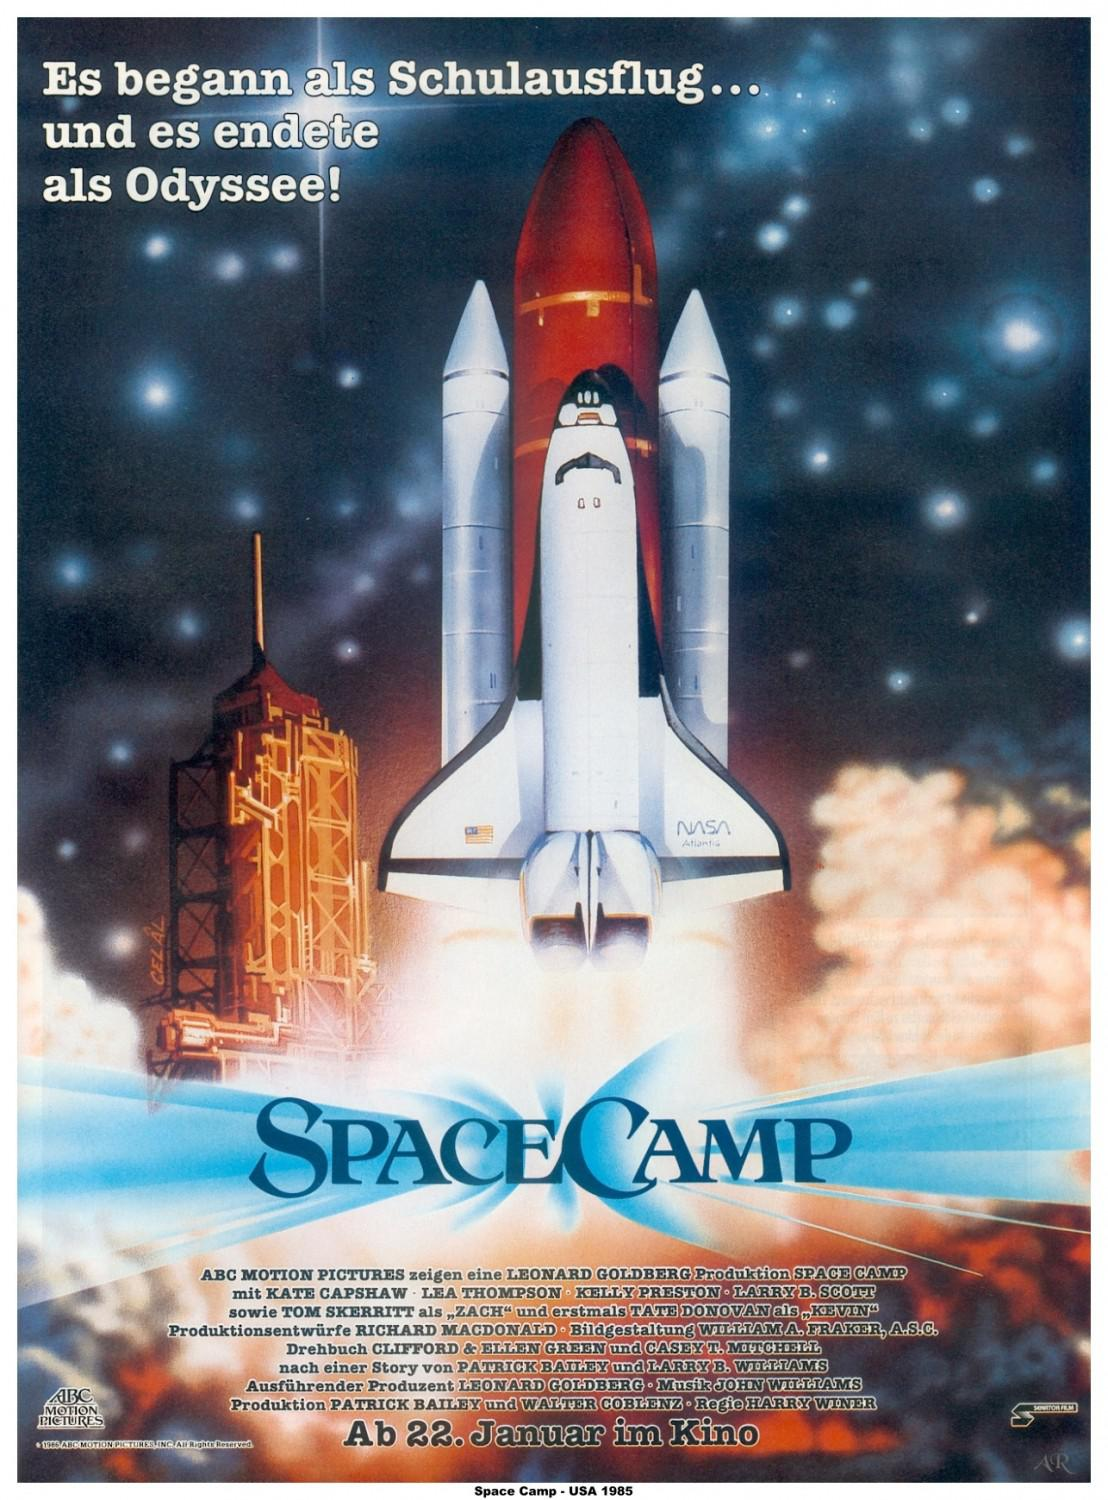 Spacecamp - poster